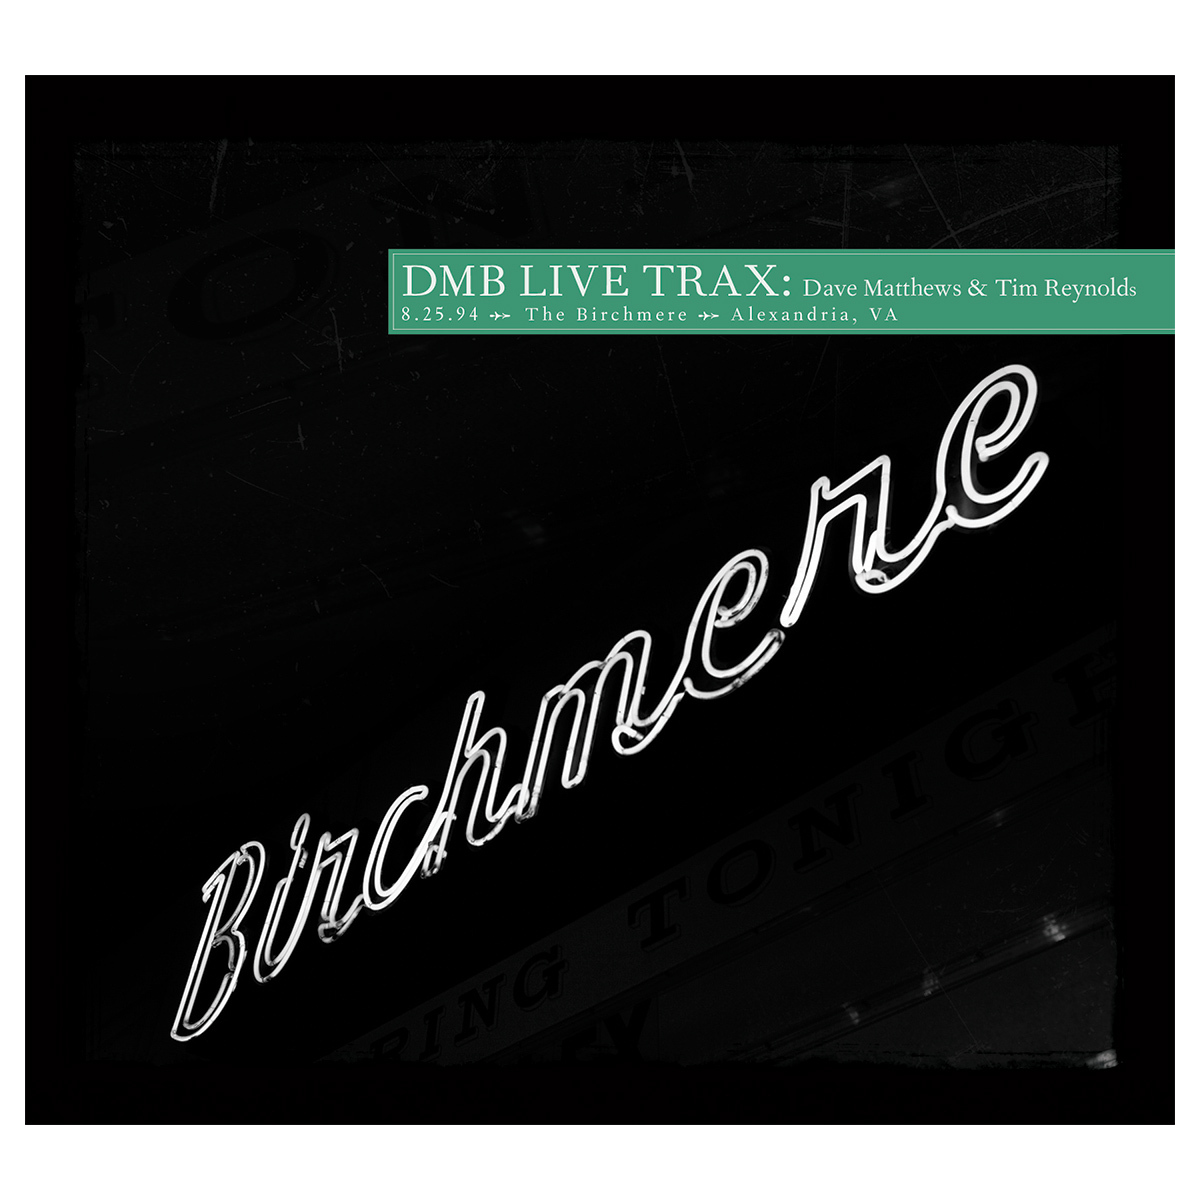 Live Trax vol. 48: The Birchmere